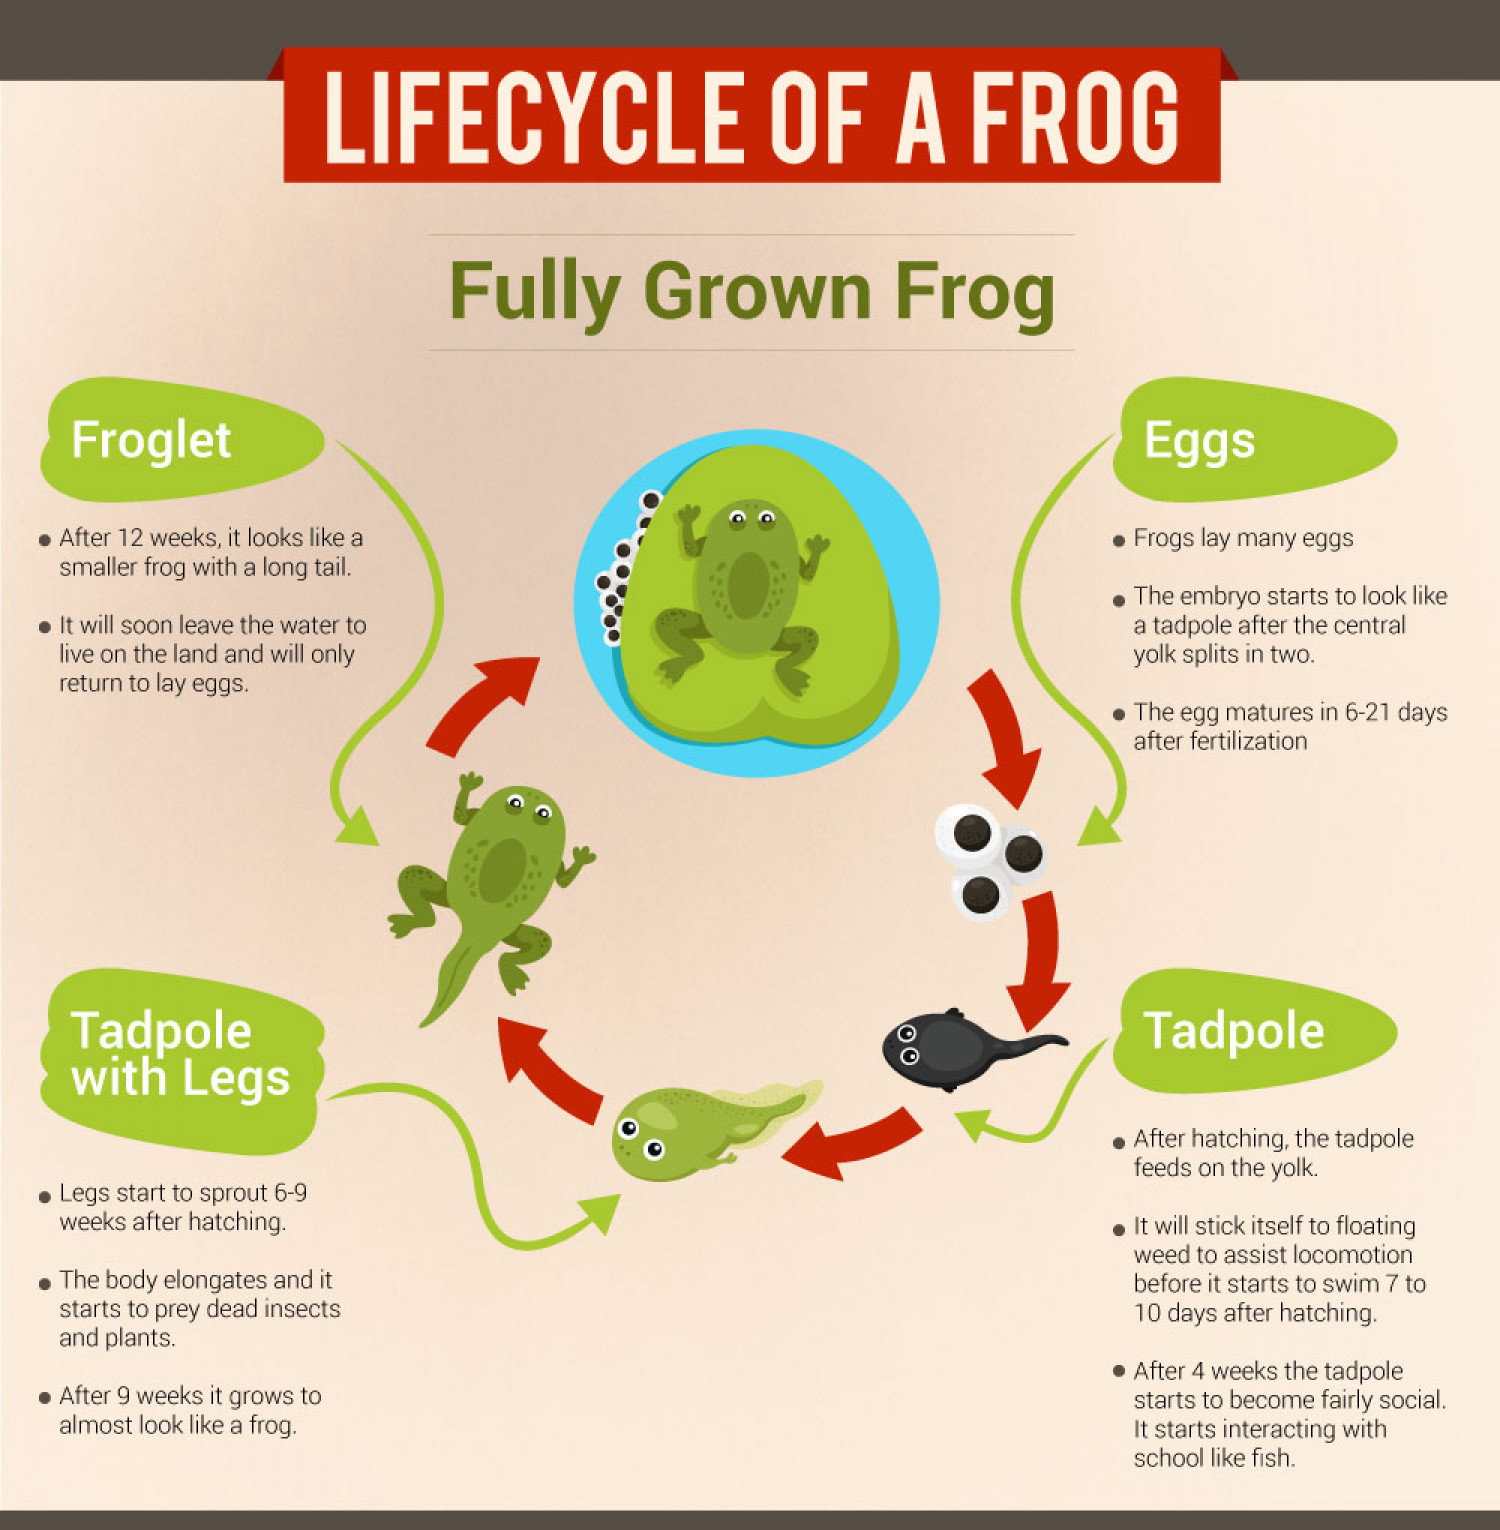 Lifecycle of a Frog Infographic